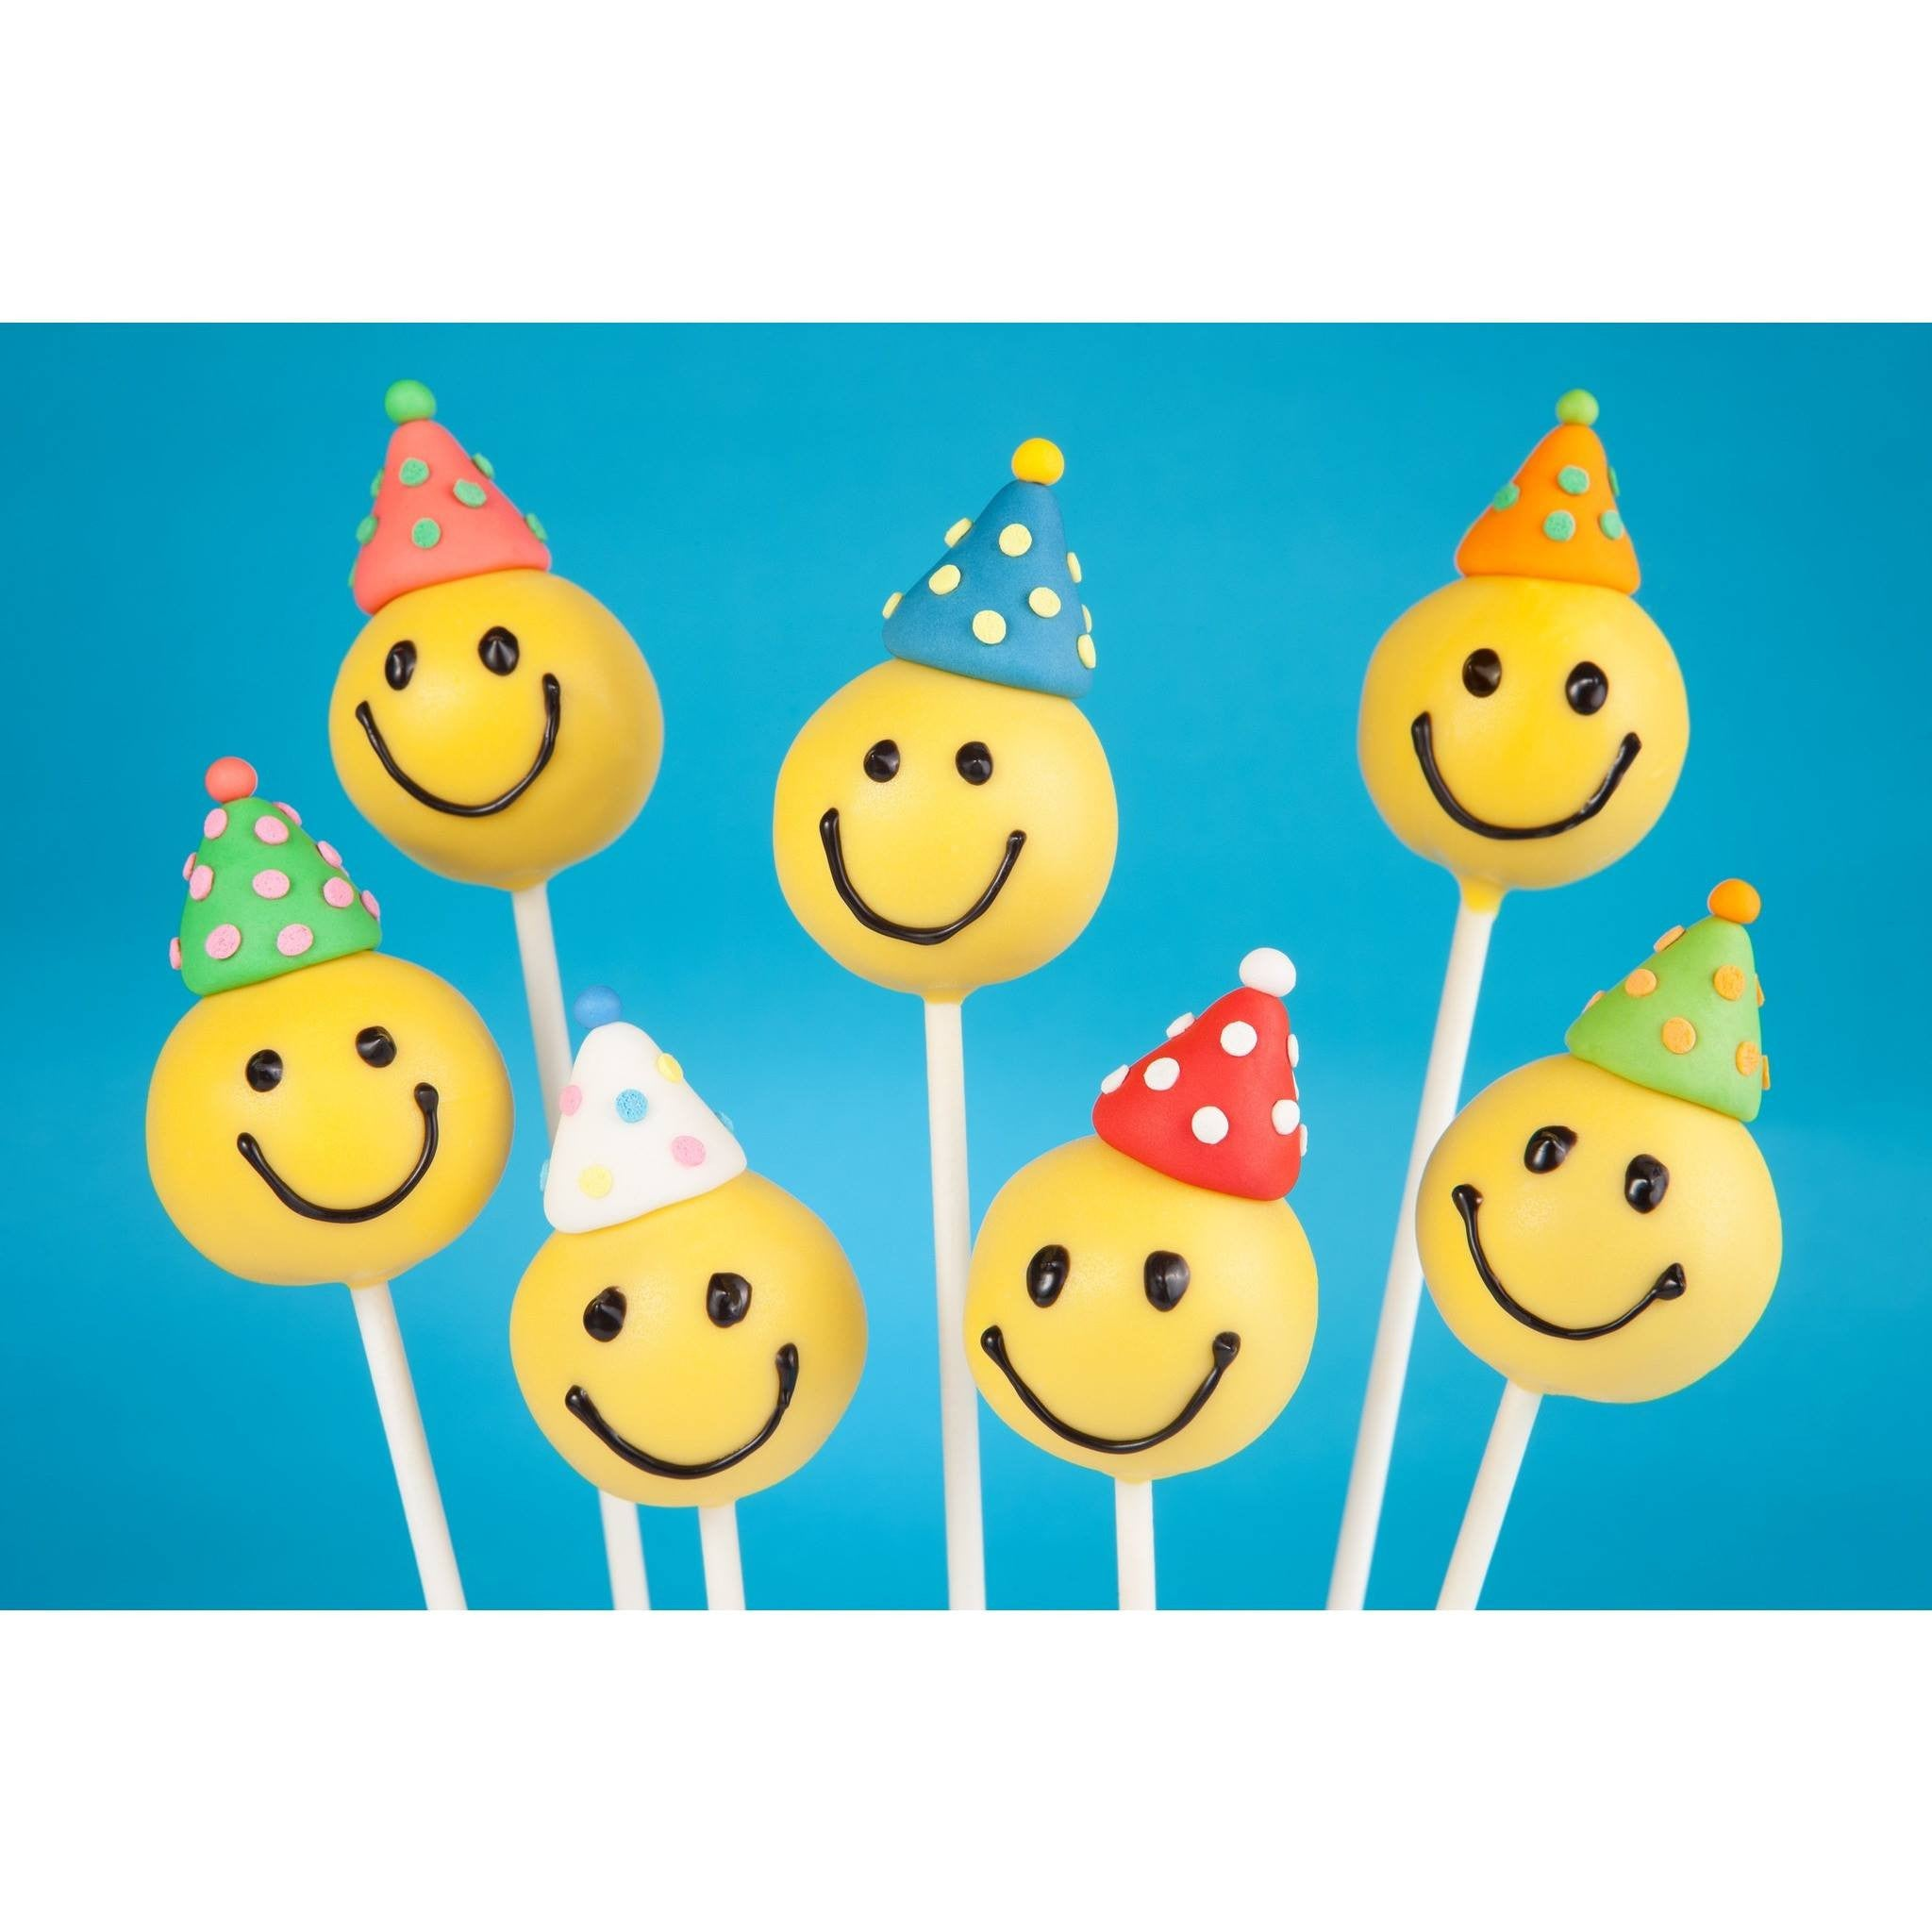 Buy Emoji Cake Pops With Party Hats - Cake Pops Parties